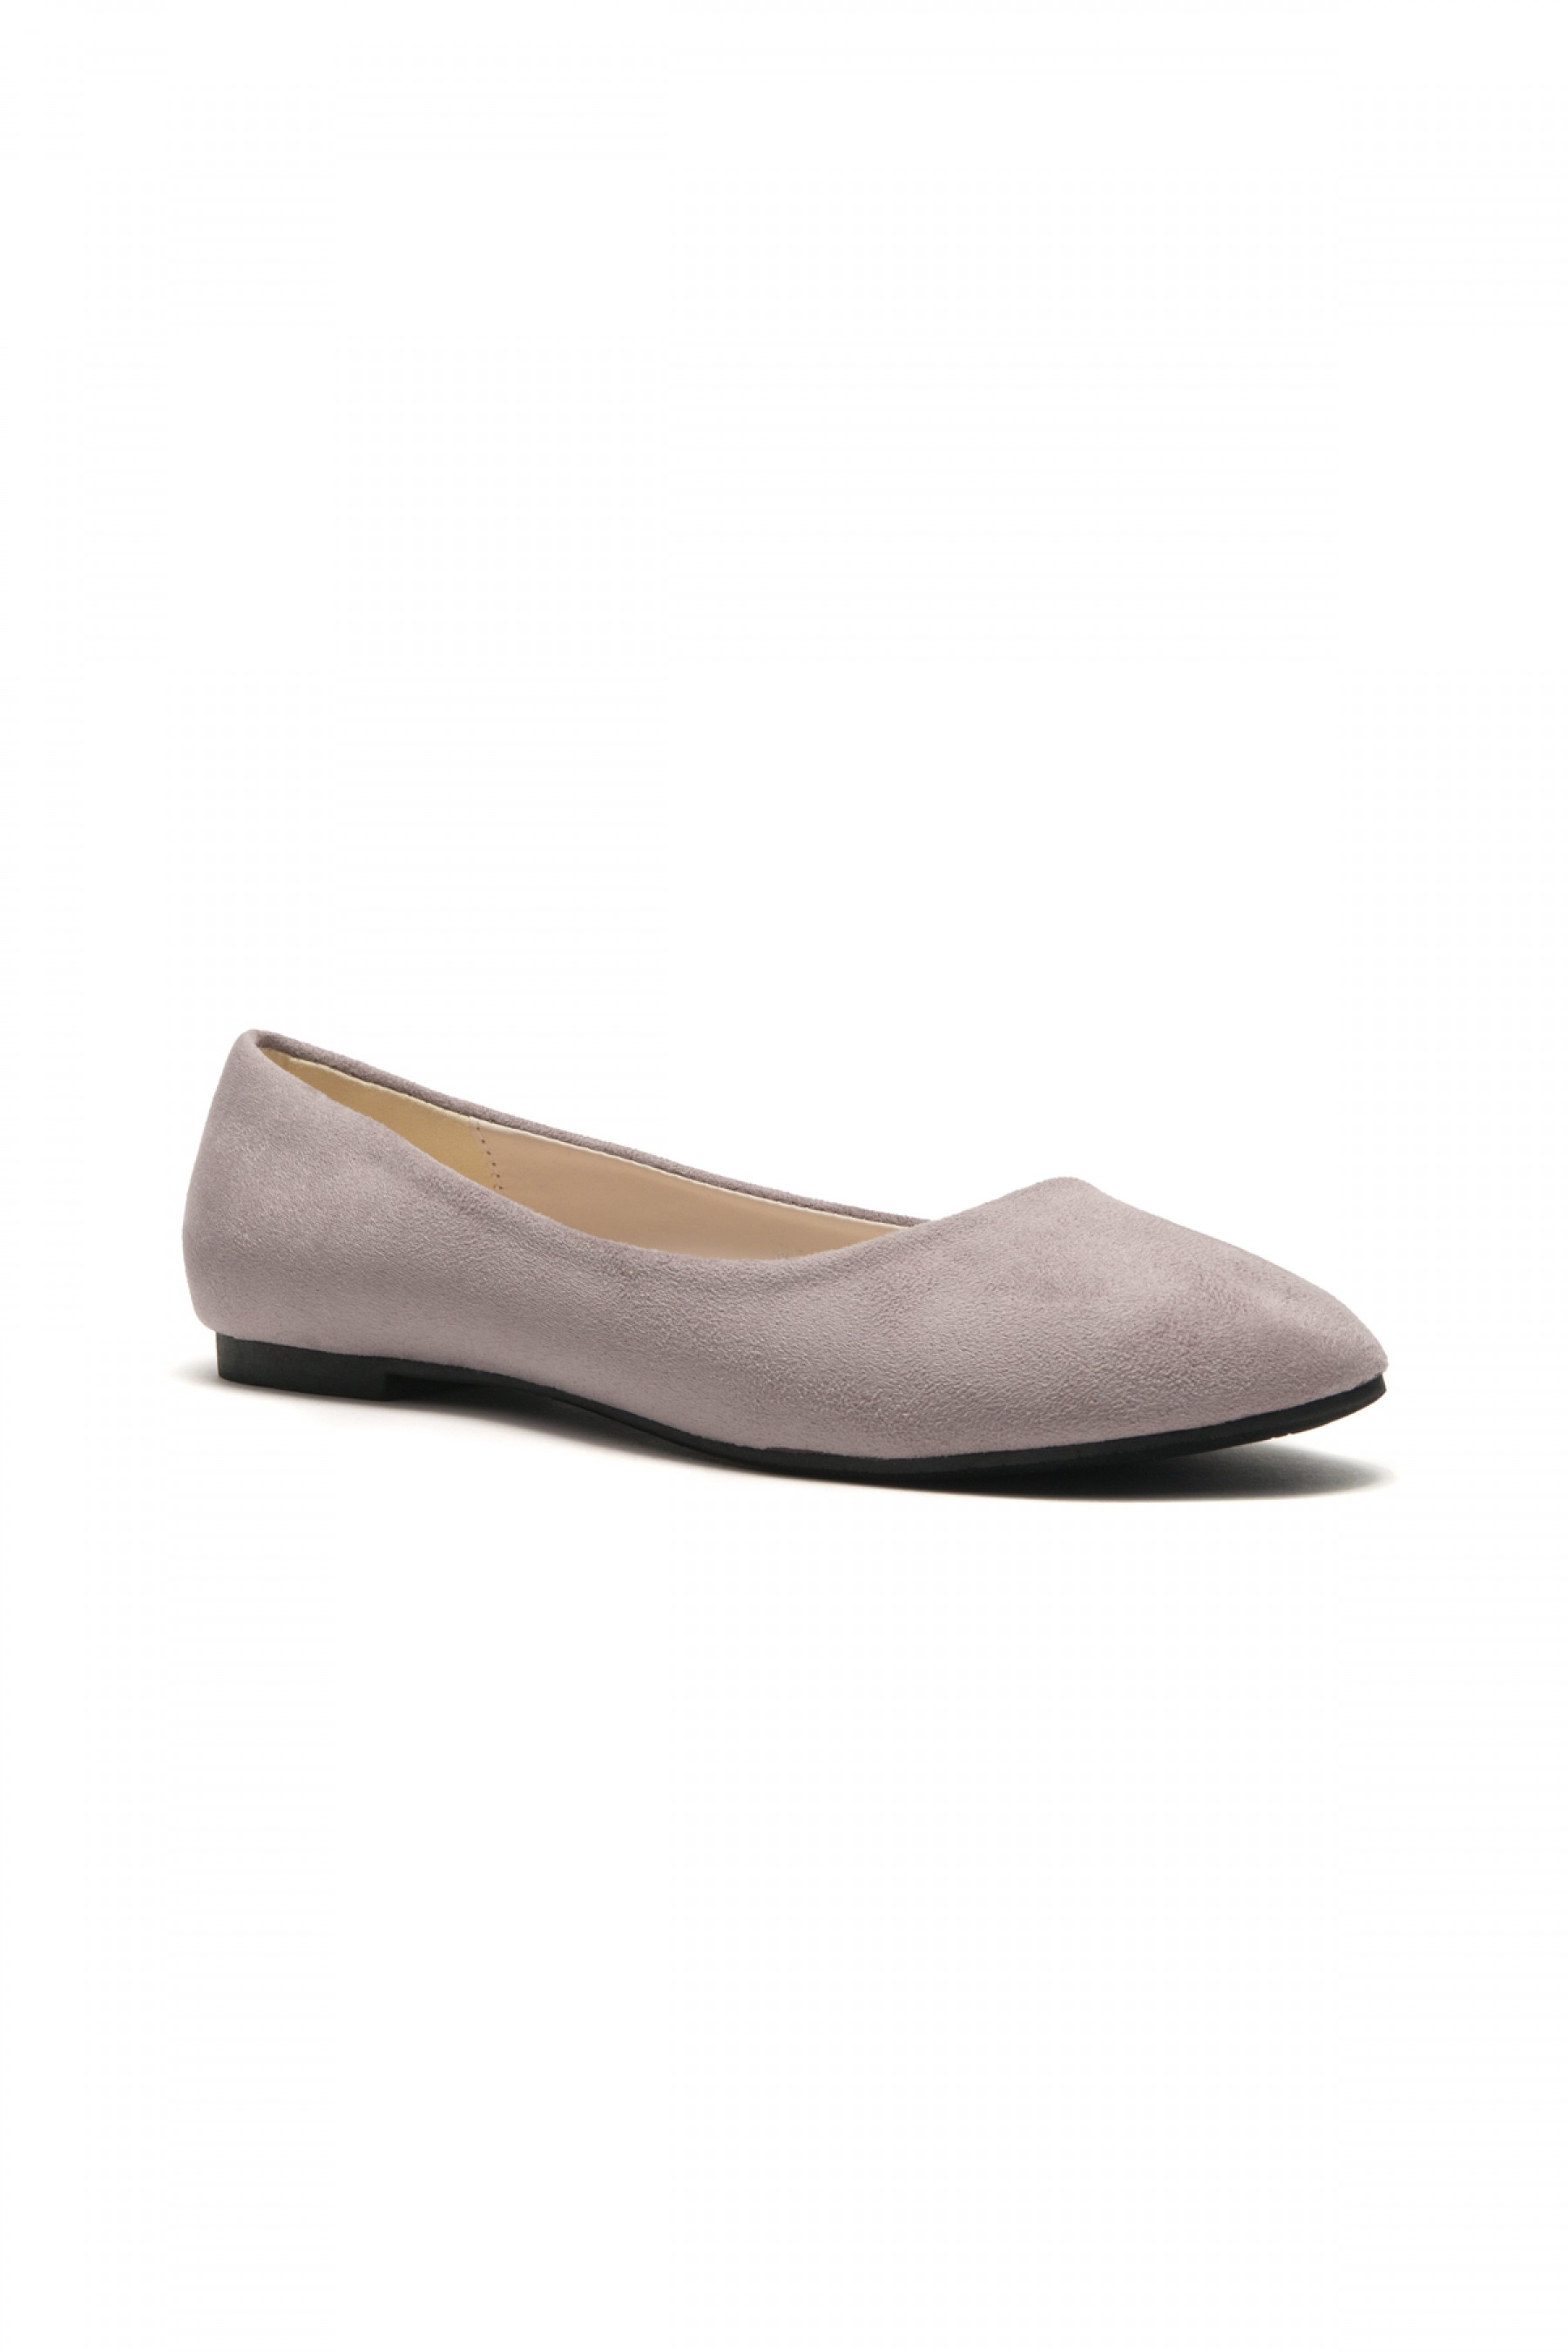 HerStyle Women's Manmade Sammba Colorful Ballet Flat (Light Grey)